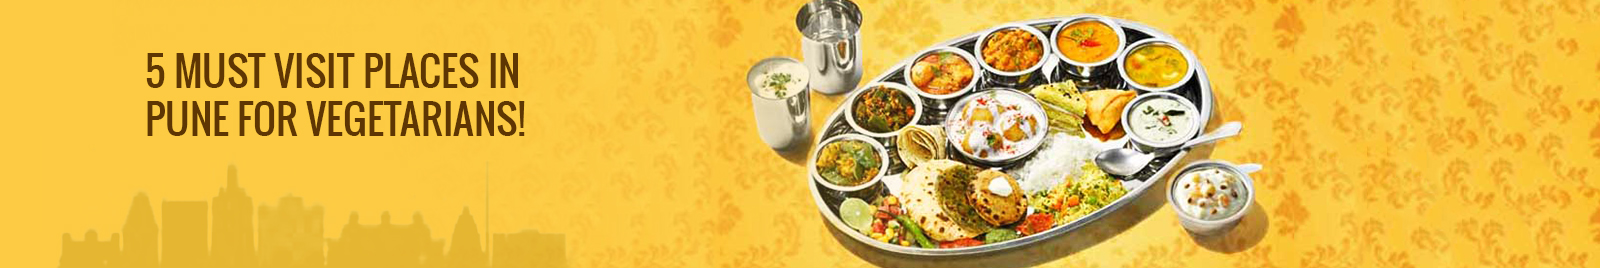 5 MUST VISIT PLACES IN PUNE FOR VEGETARIANS!